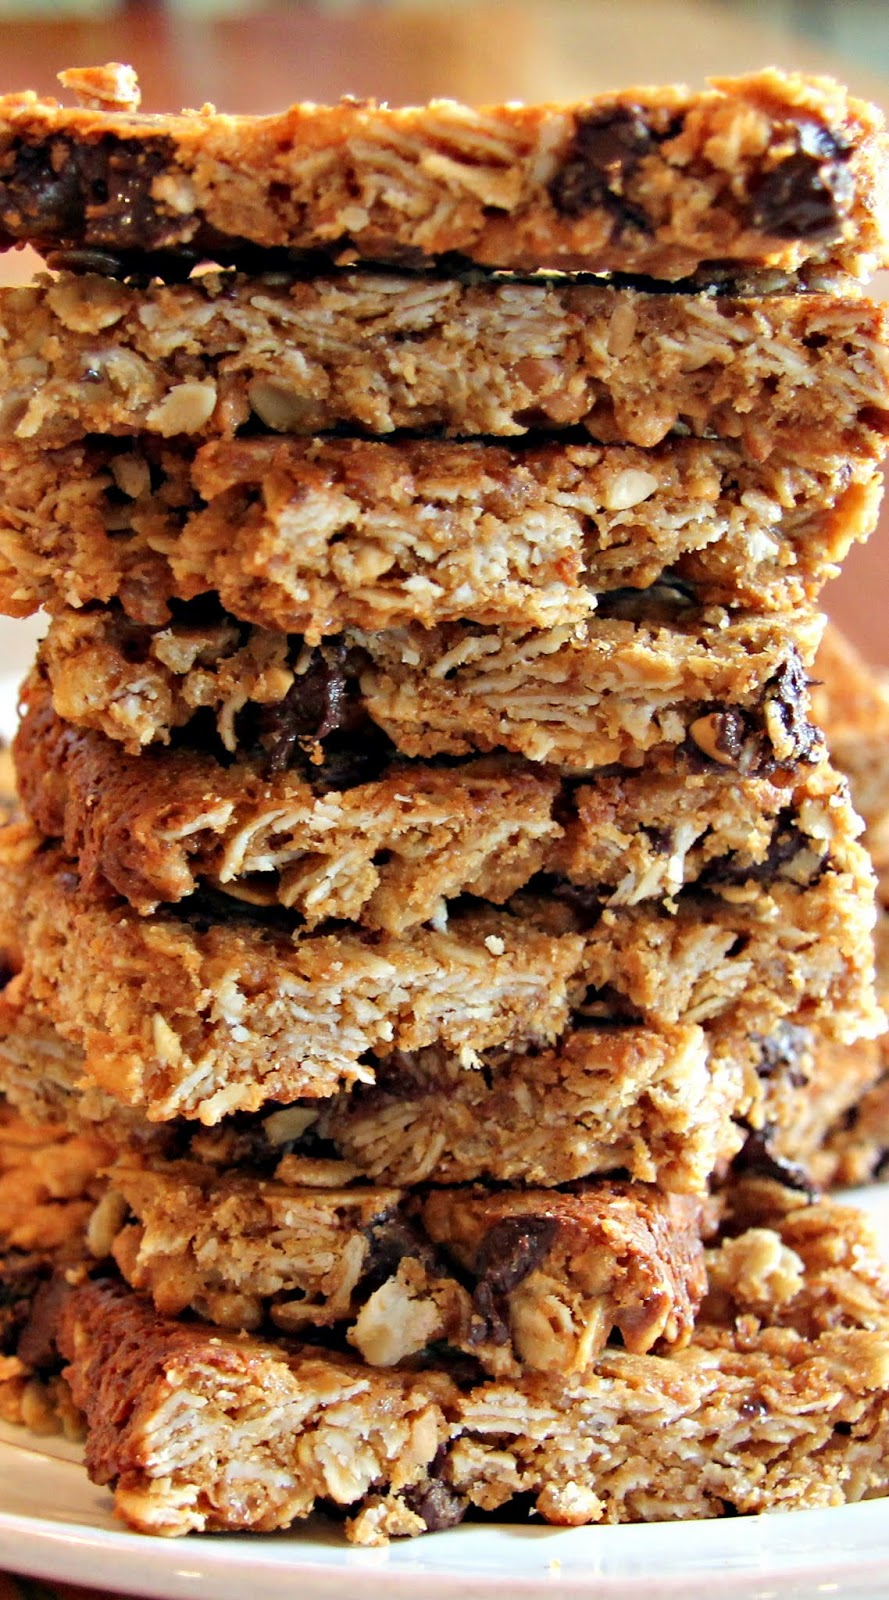 Peanut Butter Granola Bars with Chocolate Chips - Crisp and